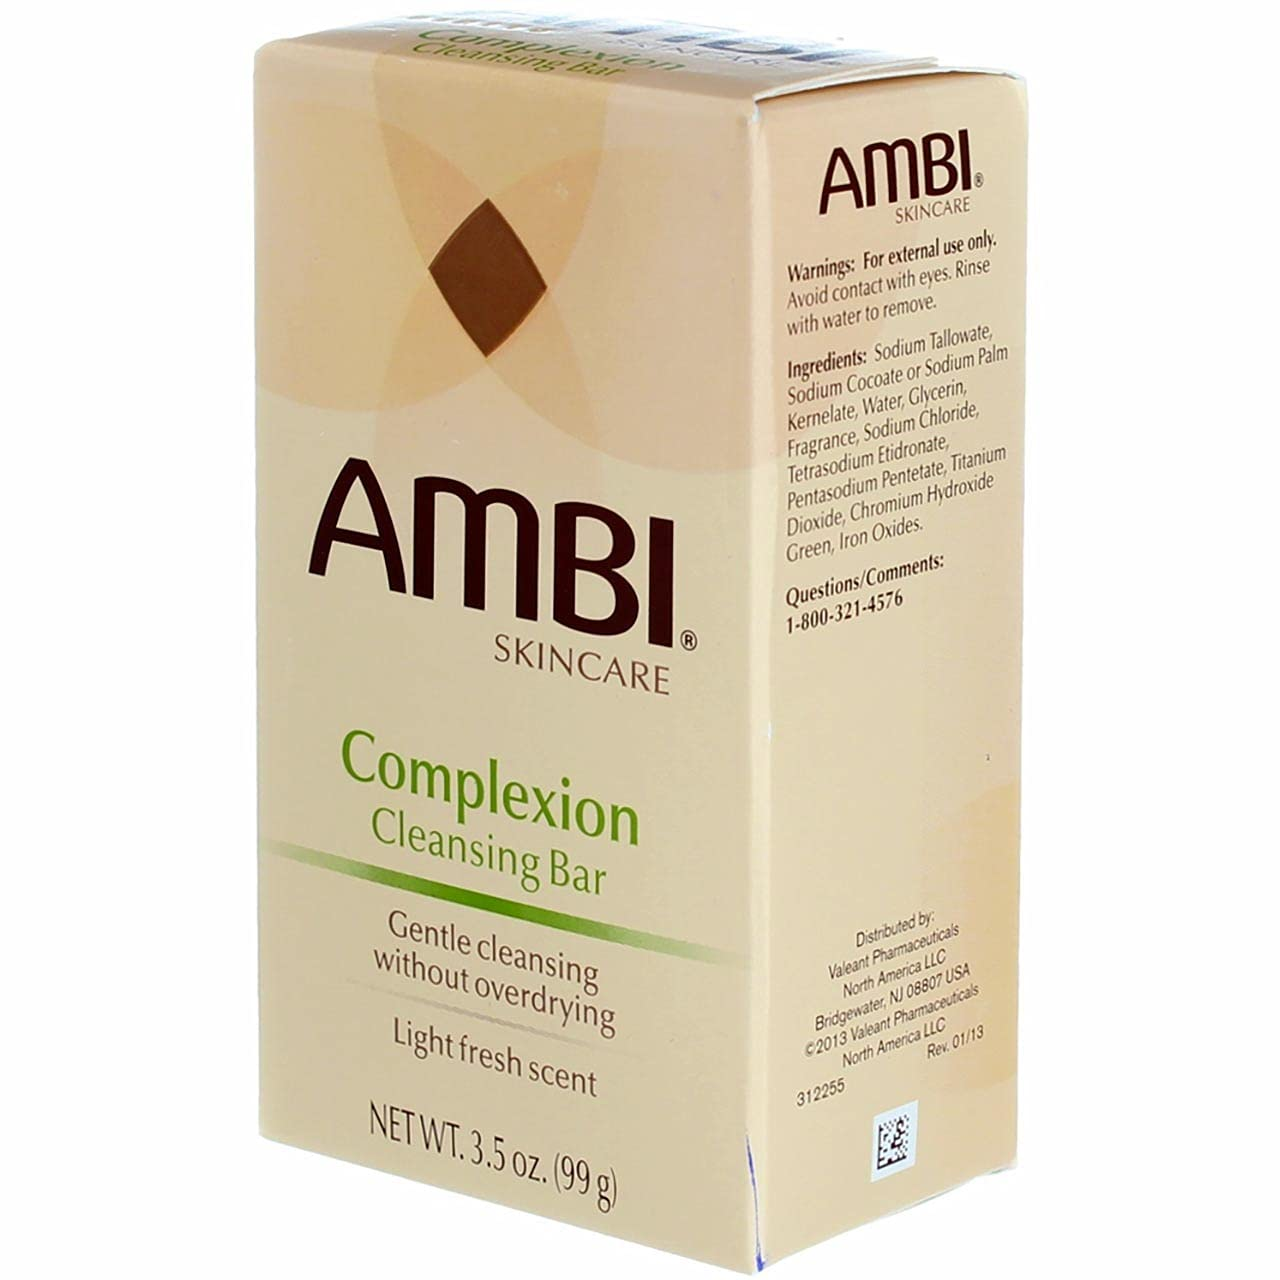 Ambi Skincare Complexion Cleansing Bar Soap | Gently Cleanses Skin without Overdrying | Enriched with Proven Cleansing Agents to Effectively Wash Away Surface Impurities | 3.5 Oz (2-Pack)